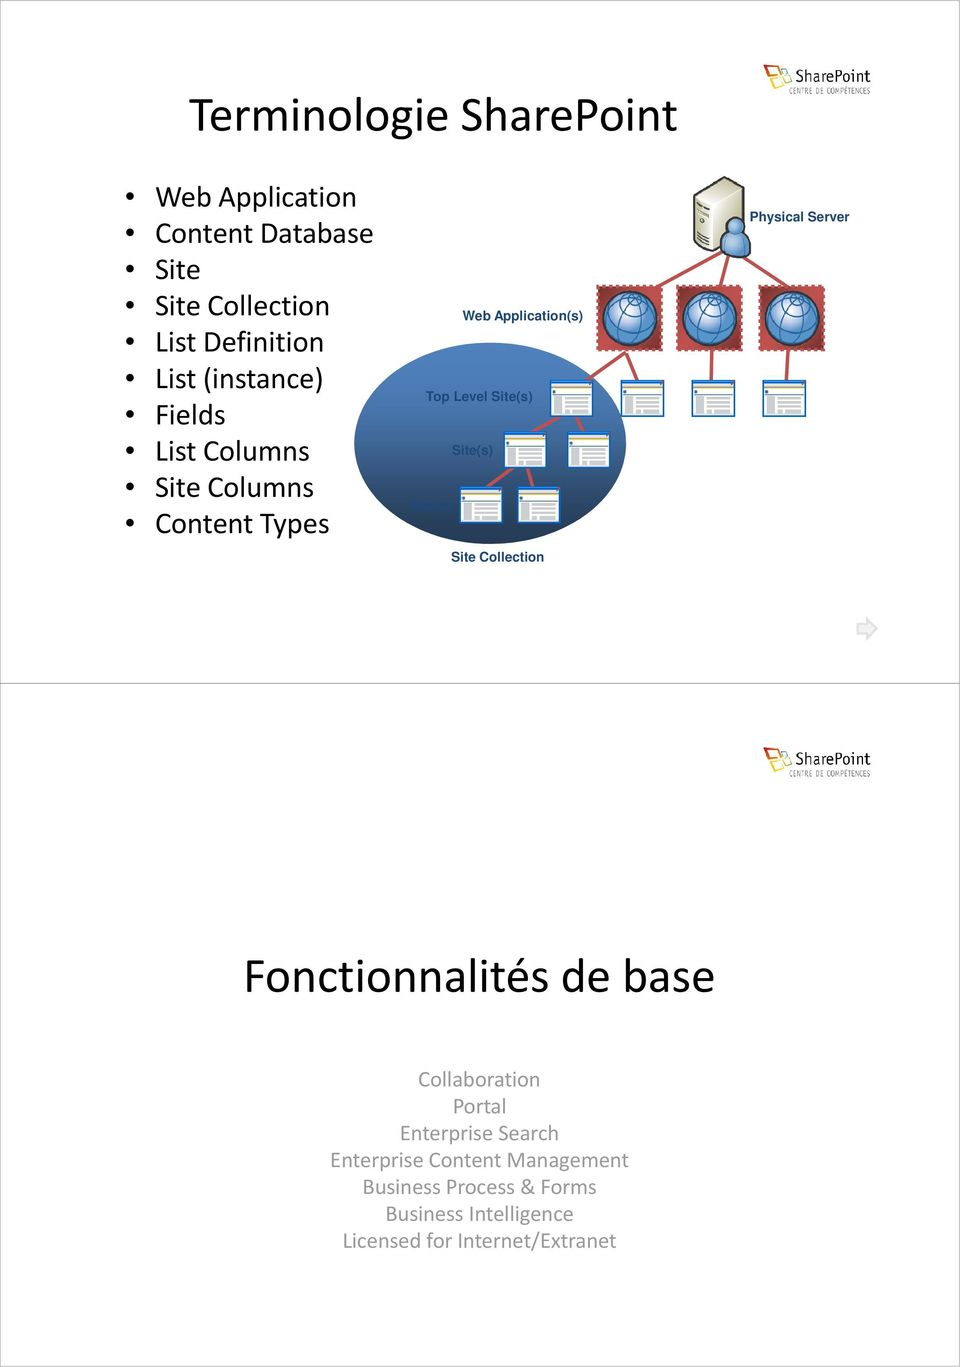 Site(s) Site Collection Physical Server Fonctionnalités de base Collaboration Portal Enterprise Search